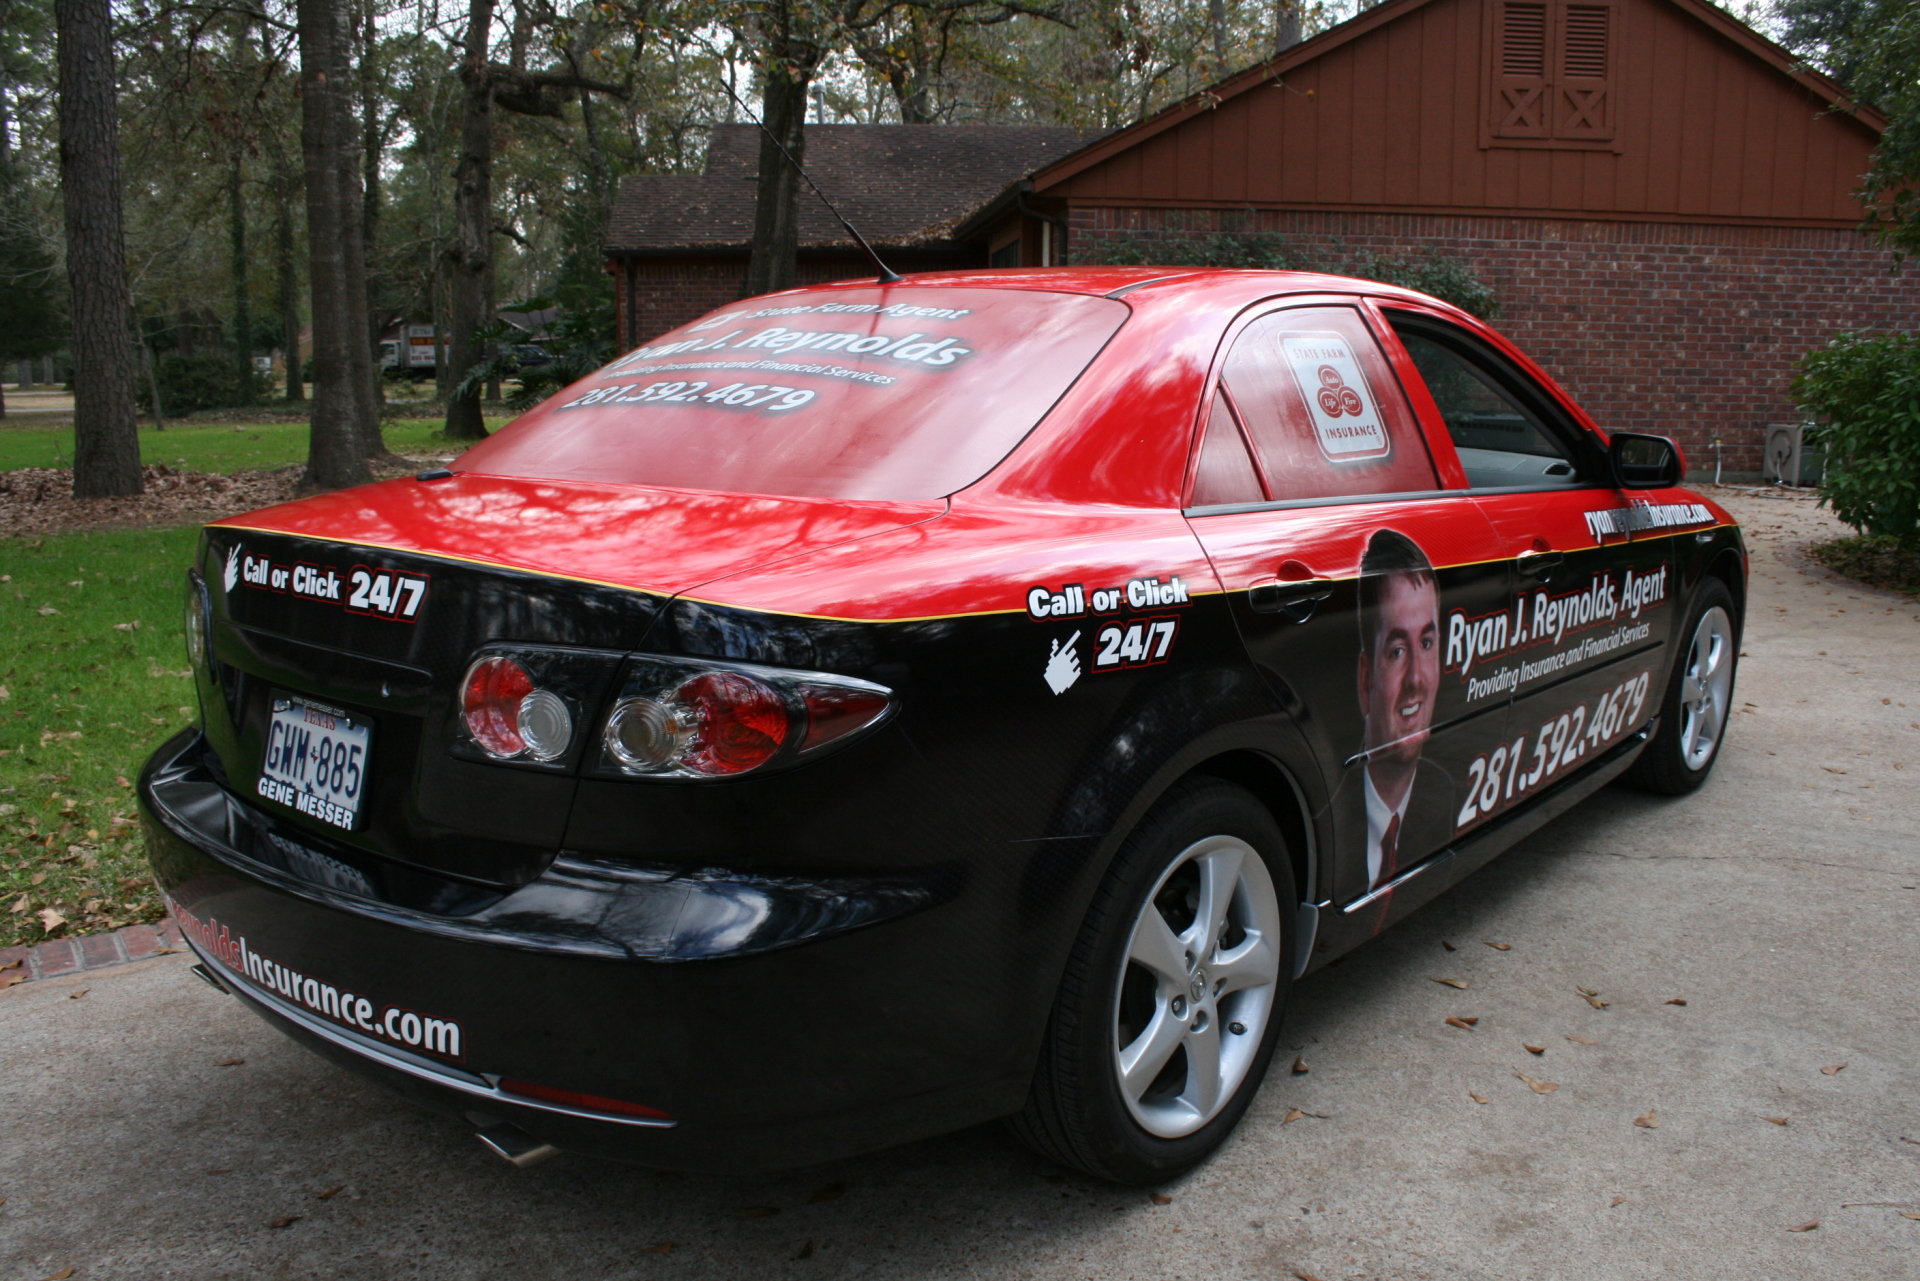 State Farm Agent Ryan J Reynolds, State Farm Wraps, Vehicle Wraps Dallas TX